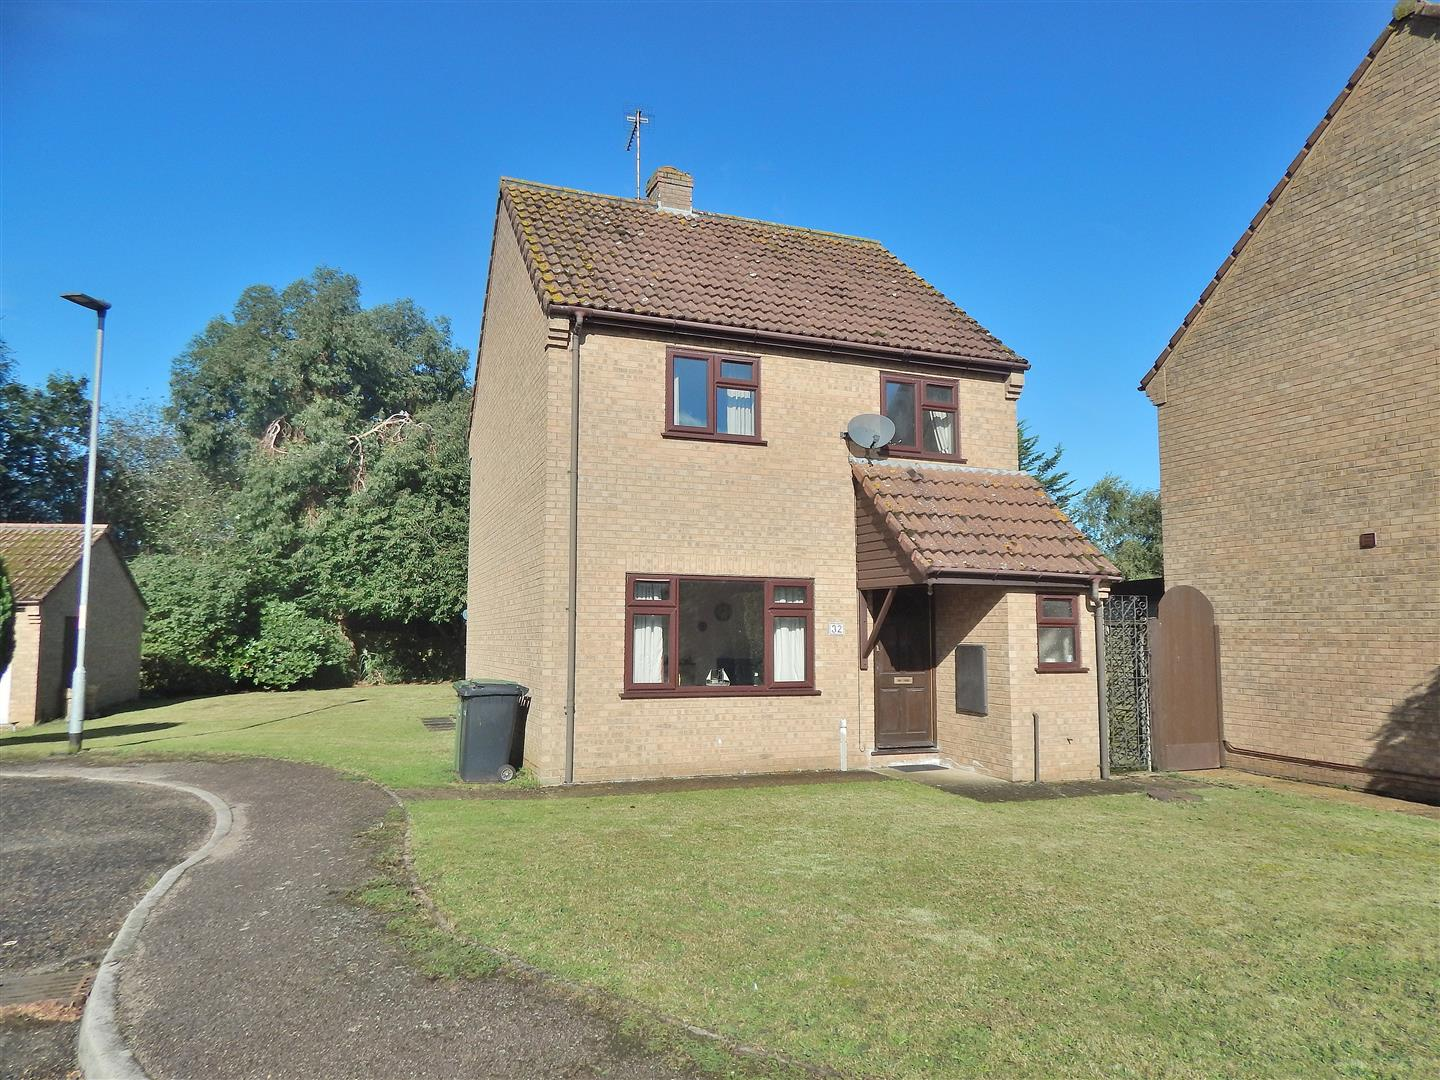 3 bed detached house for sale in Viceroy Close, King's Lynn, PE31